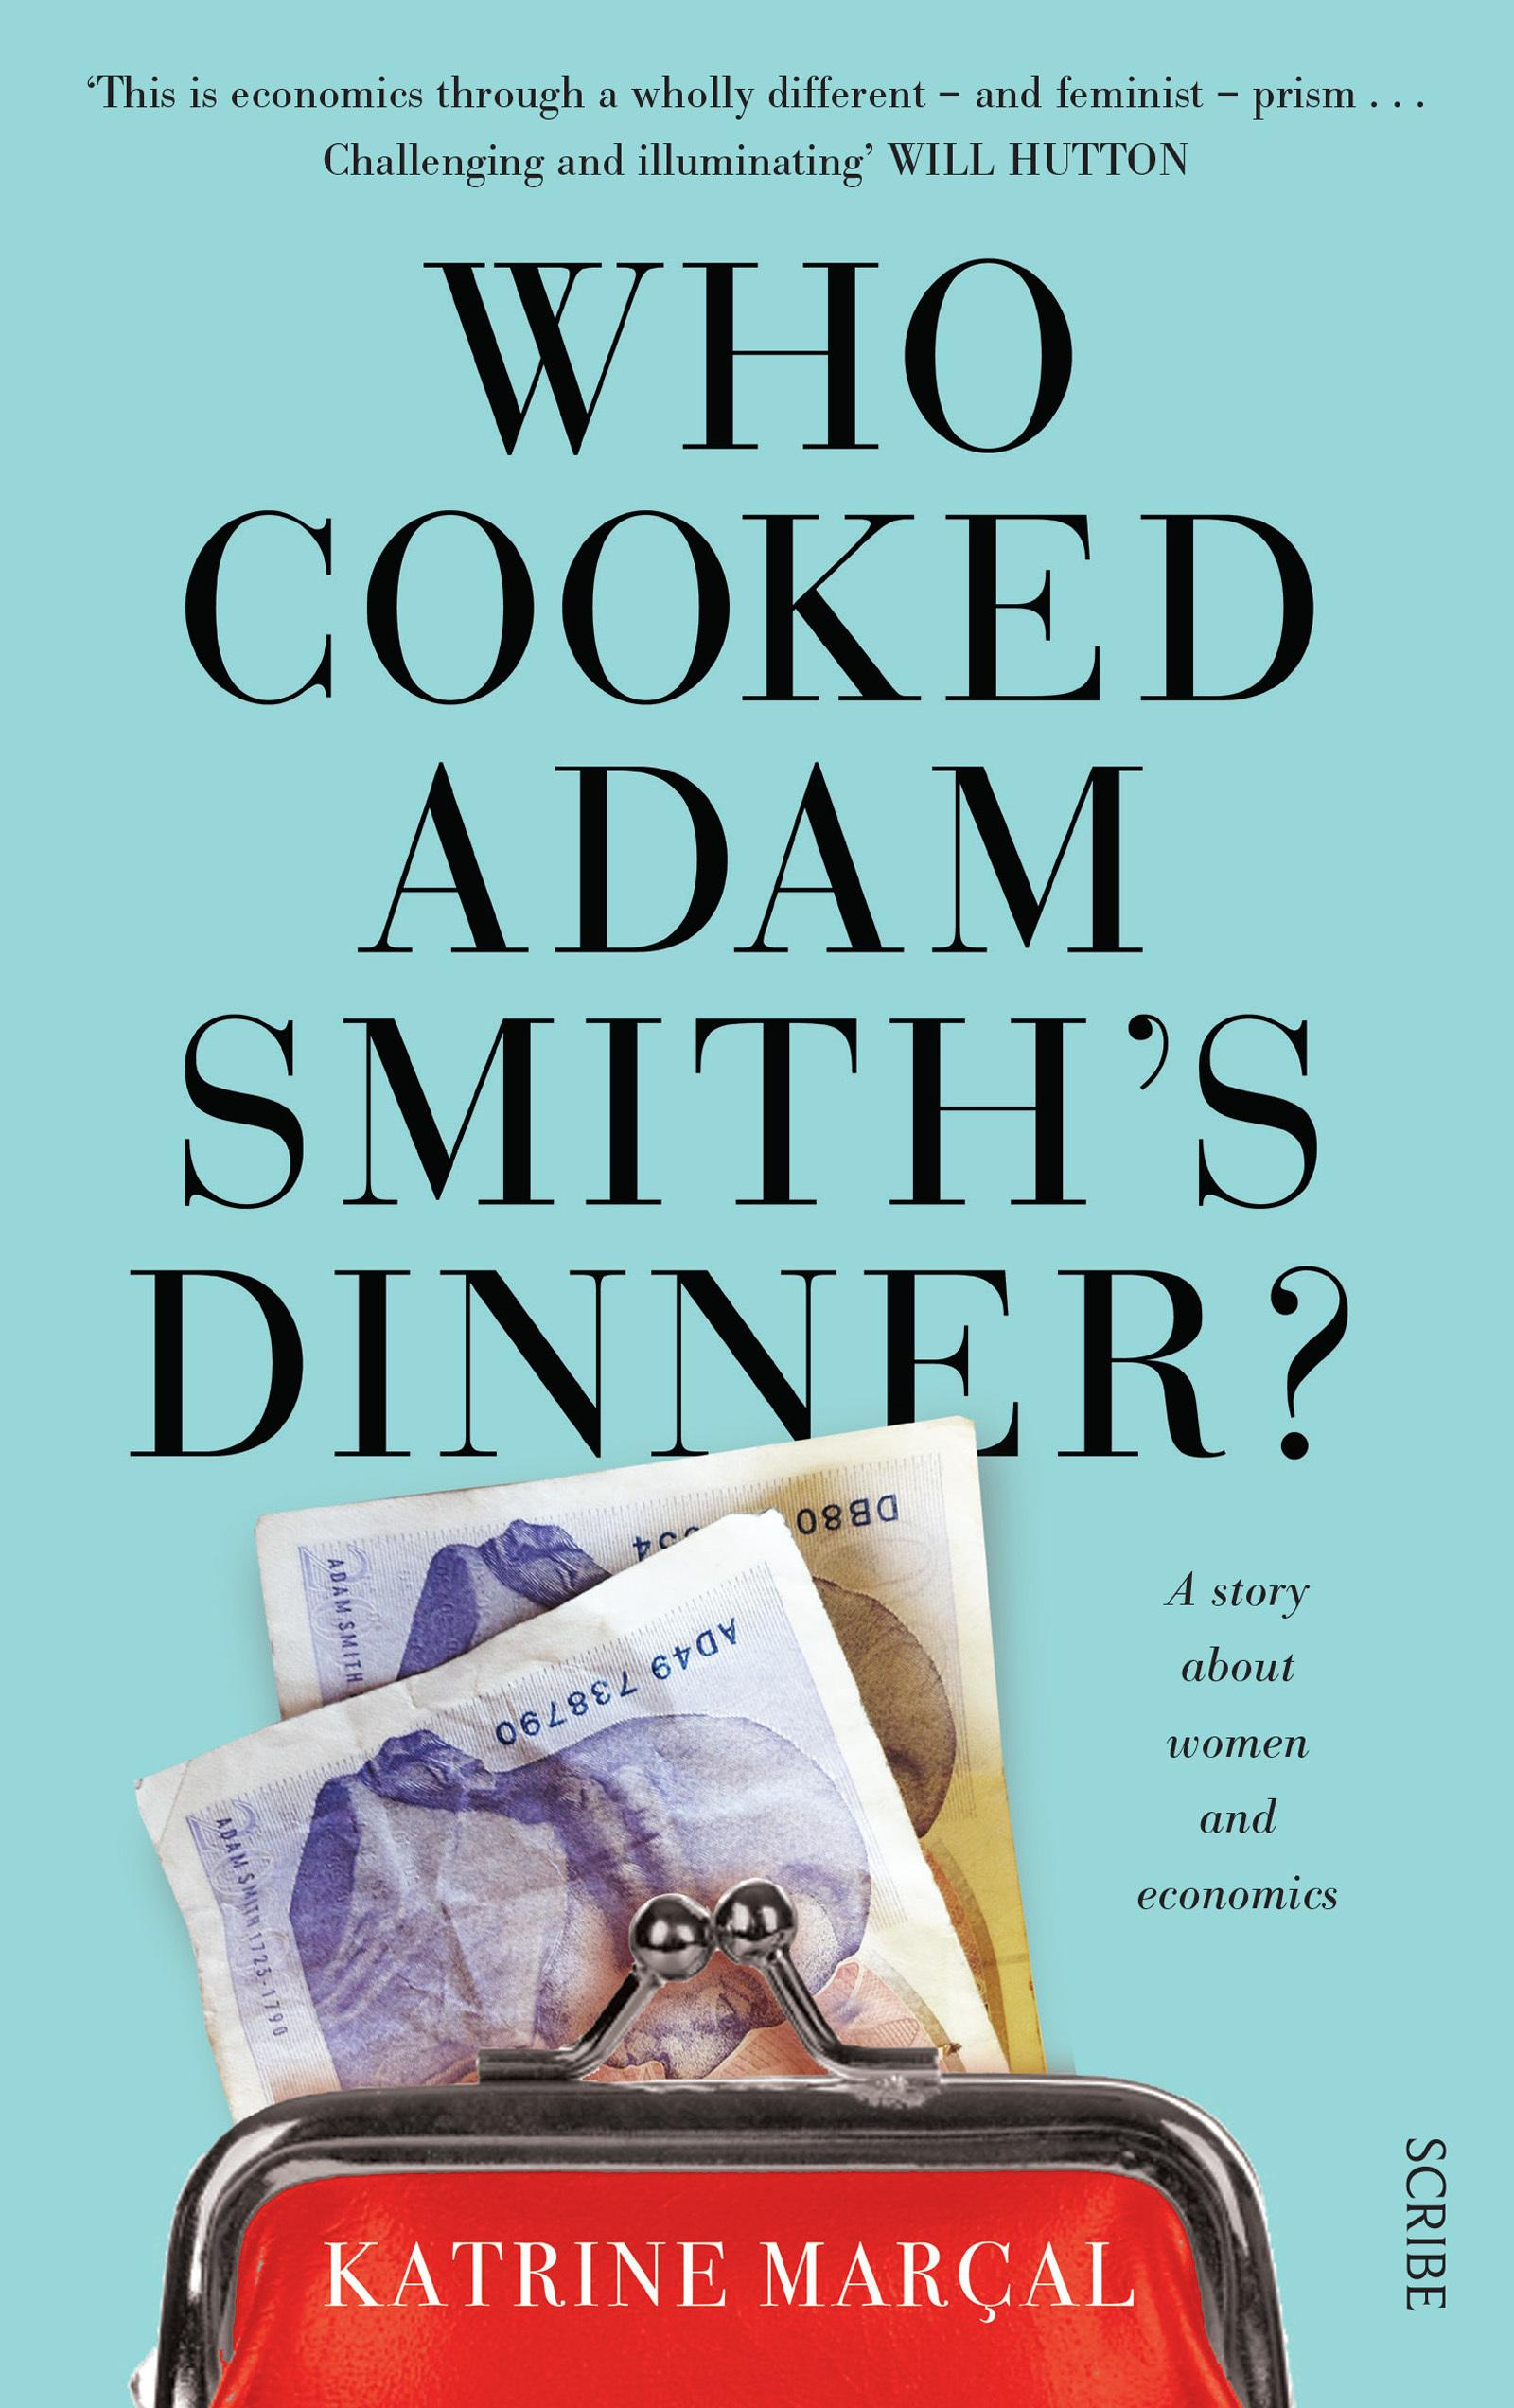 Who Cooked Adam Smith's Dinner?: A story about womenandeconomics